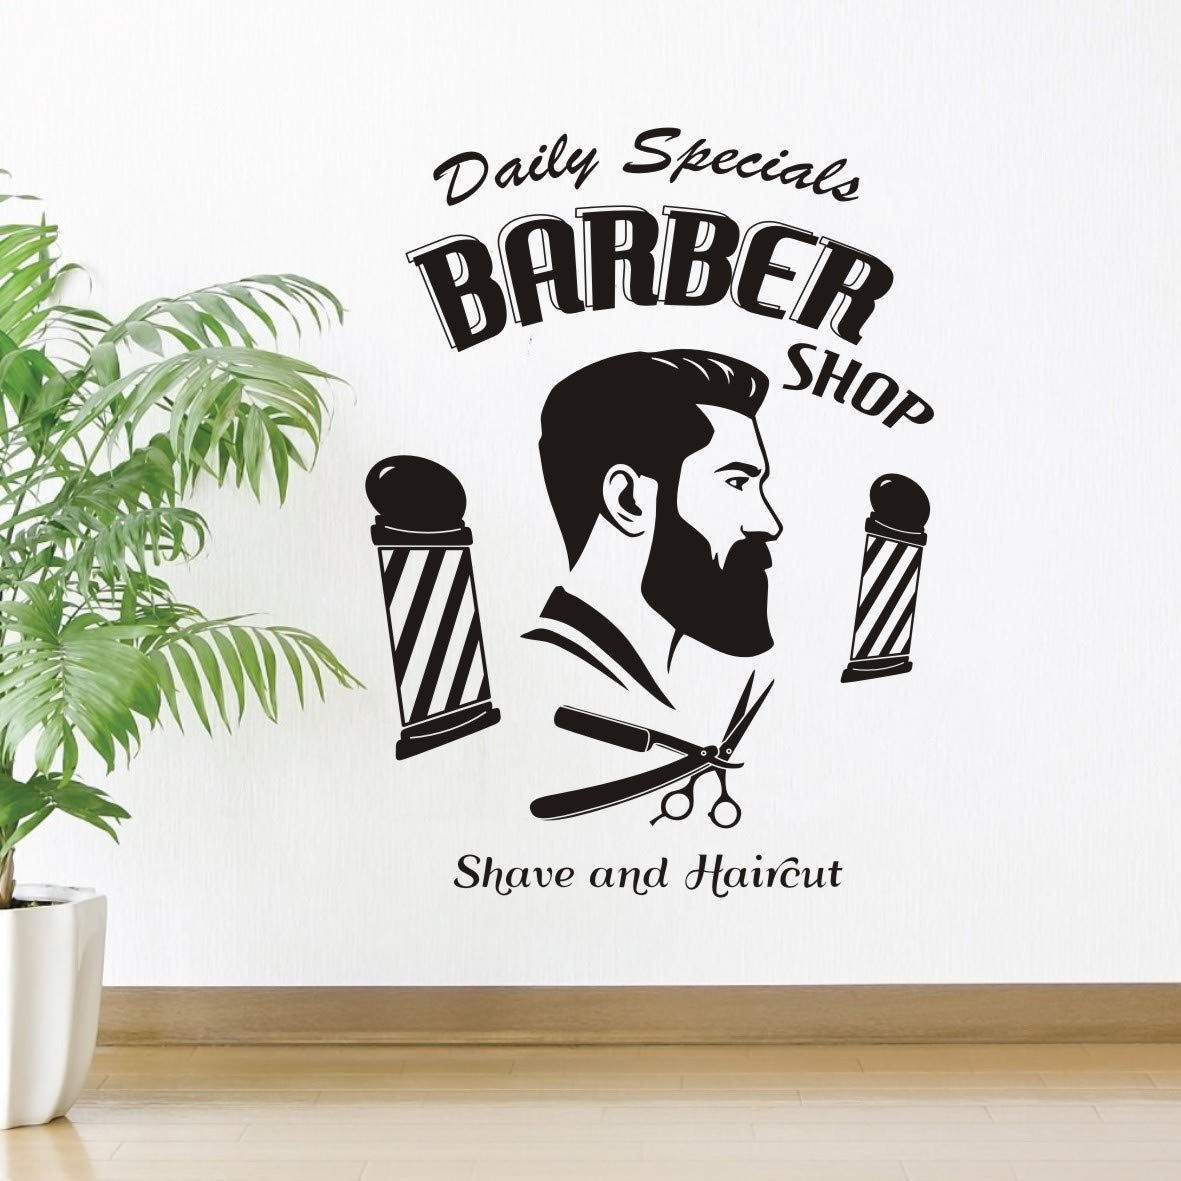 Barbershop wall sticker man salon vinyl man hairdresser wall decal window decal removable quote hairstyle mustache wall art decor mural sy431 57x78cm